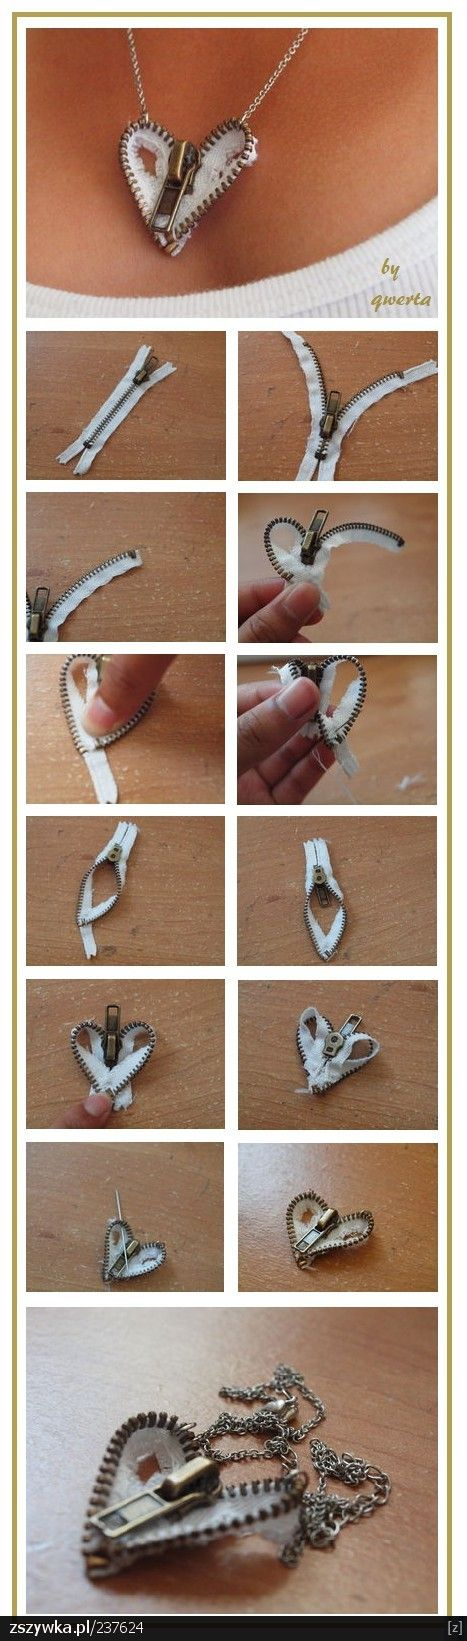 DIY necklace. I love being able to make things out of things you already have at home. It is resourceful and most of these things allow you to put your own twist on the project to make it exactly what you want. These crafts let you express your creative side, if your like me and have no creative side, in something that you will actually wear or use. And its fun to do!